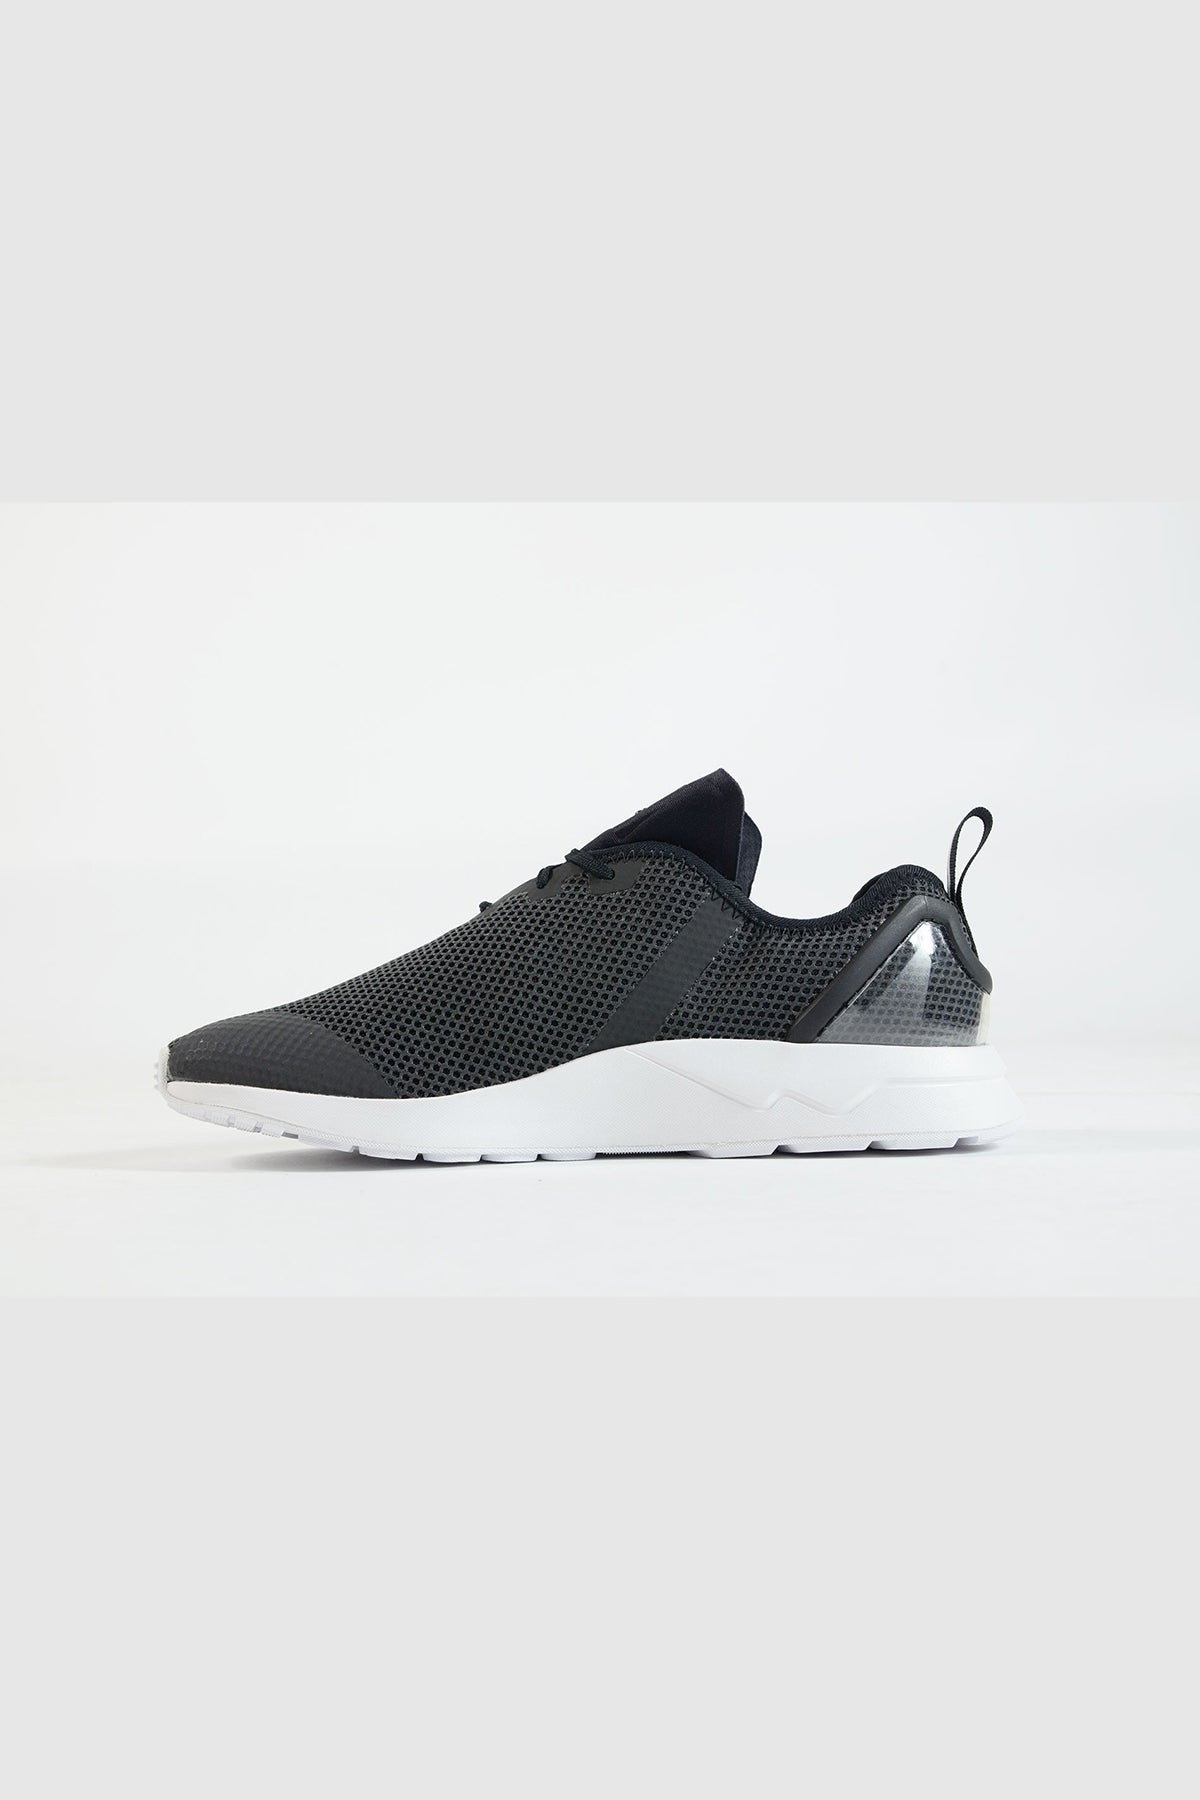 6a6e4f05f6154 ... germany adidas zx flux racer asymmetrical black white 701aa 69100